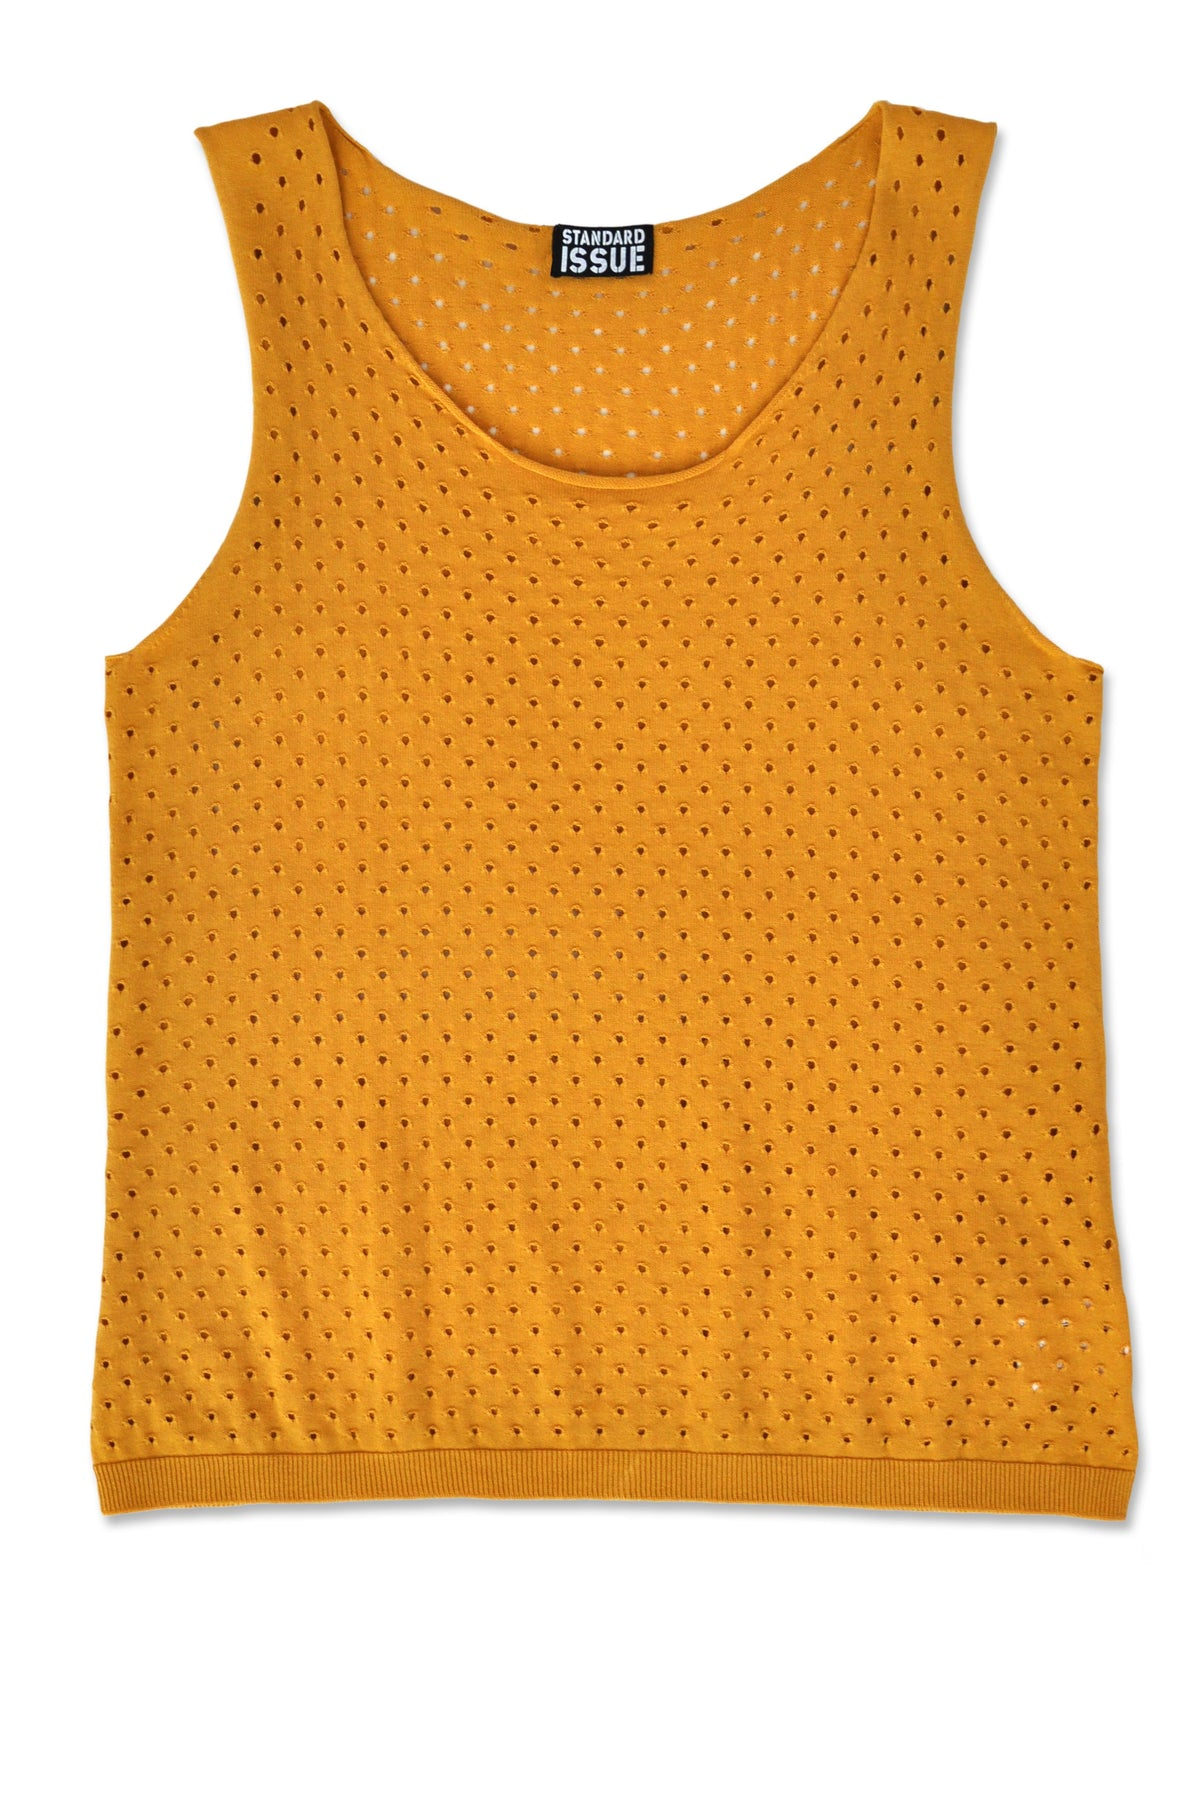 Standard Issue mesh singlet Multi styles Knitwear Stockists Auckland Made in New Zealand NZ Designer Clothing